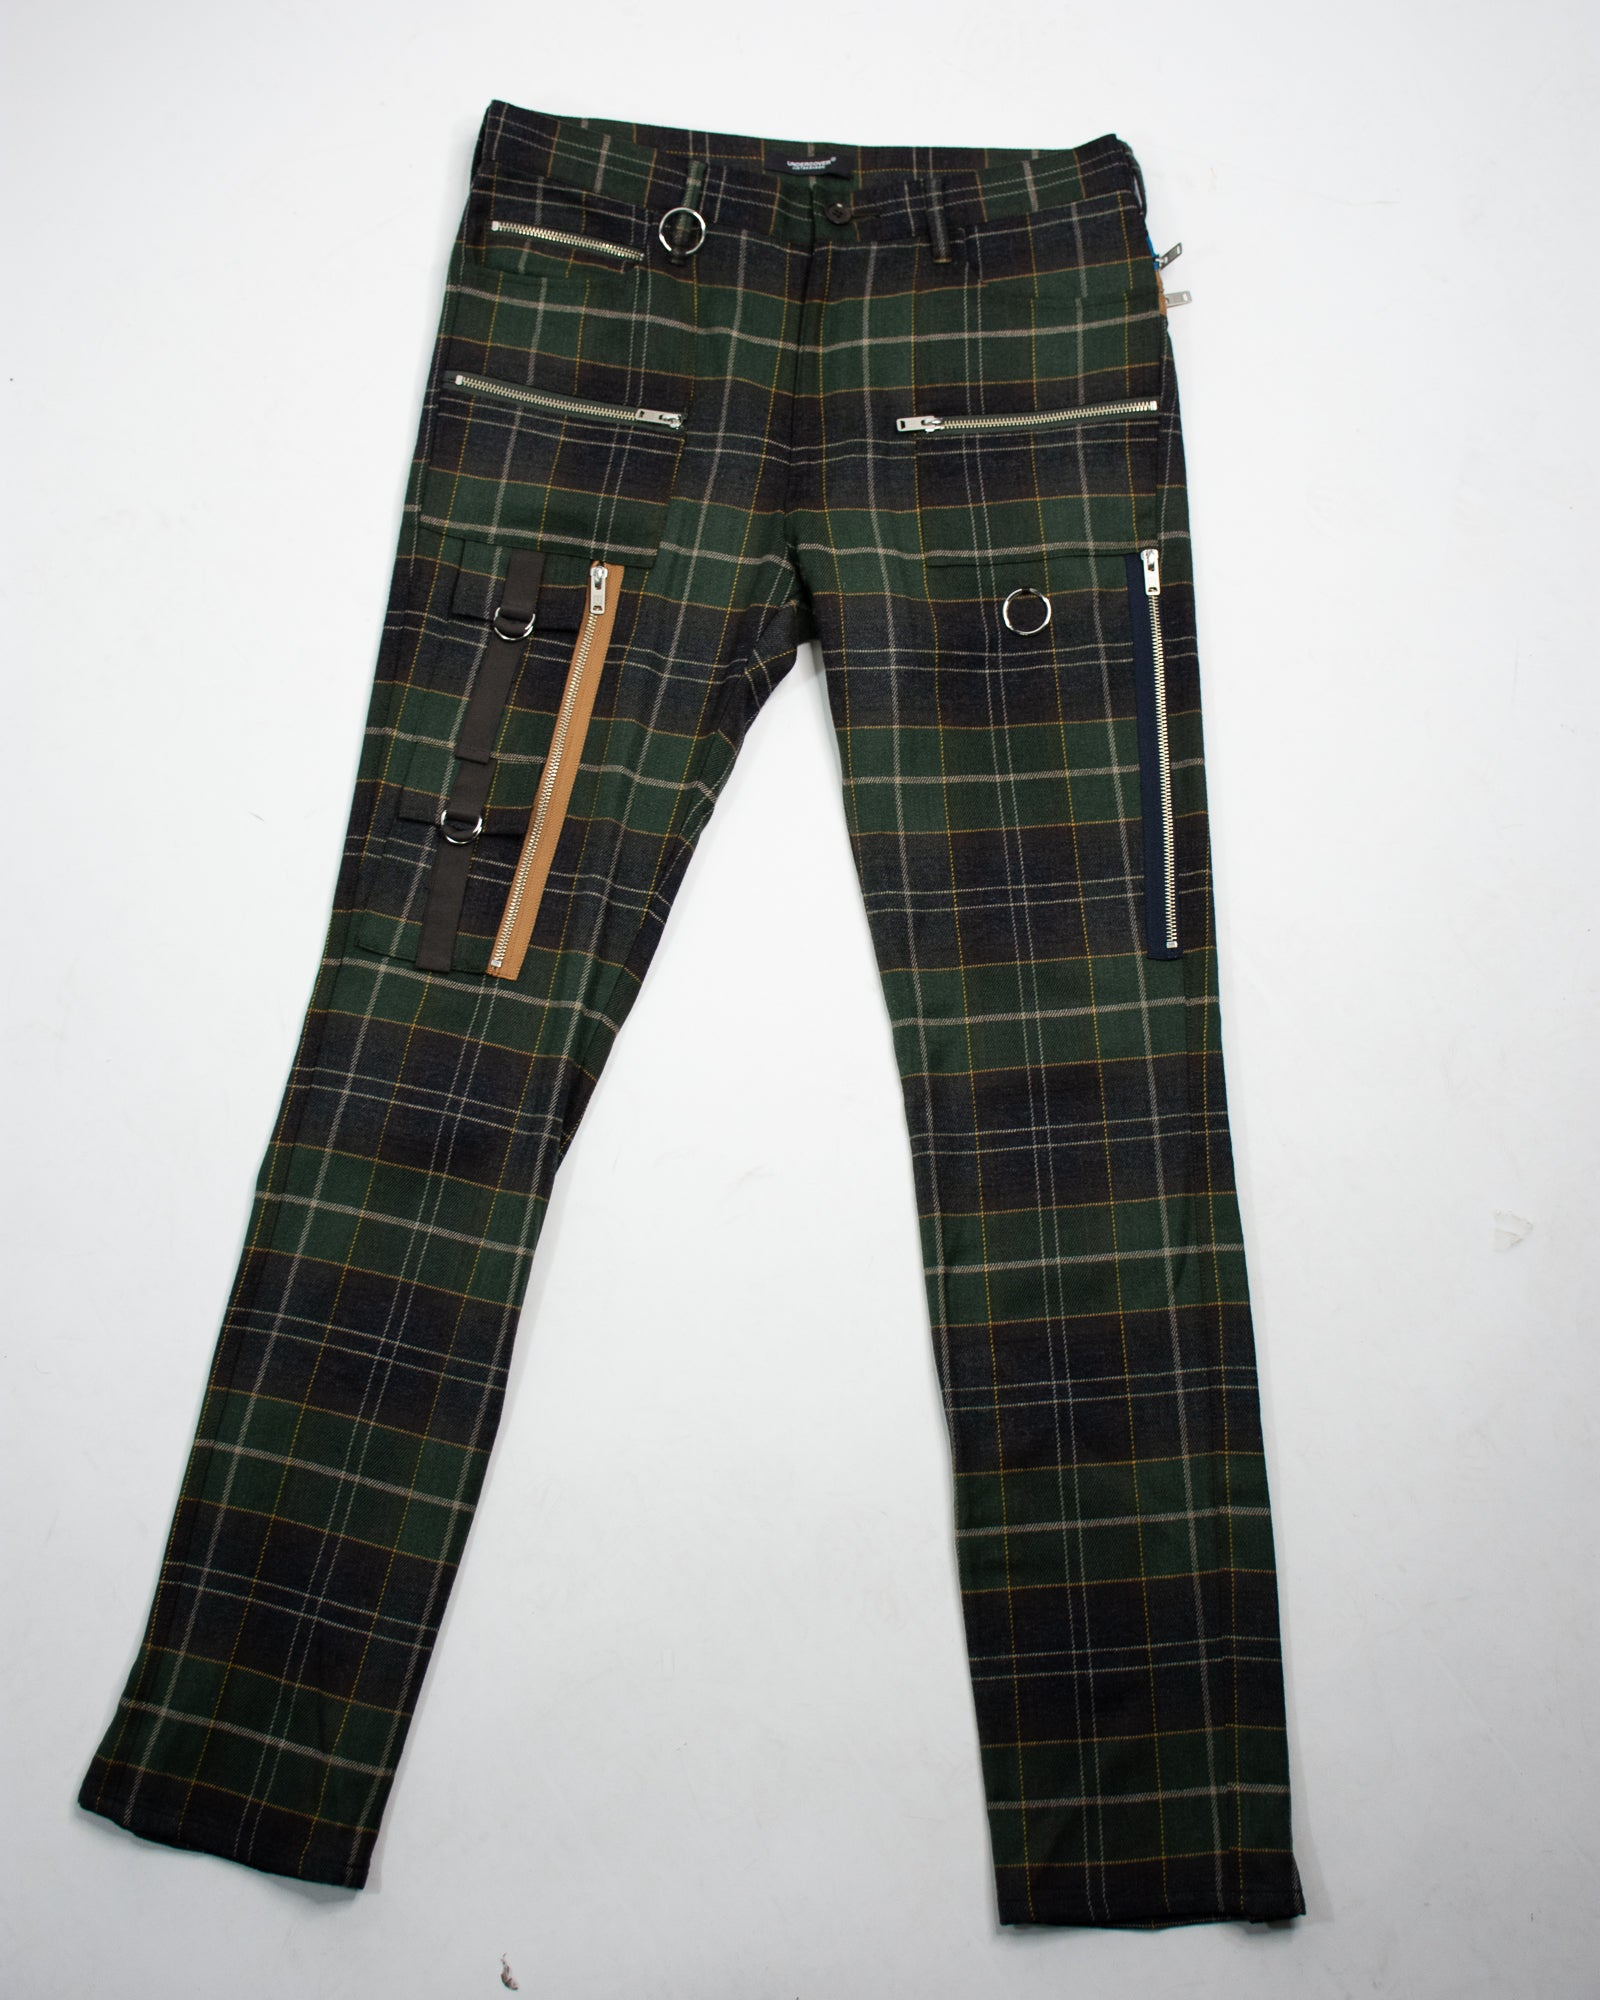 UNDERCOVER Tartan Check Pant